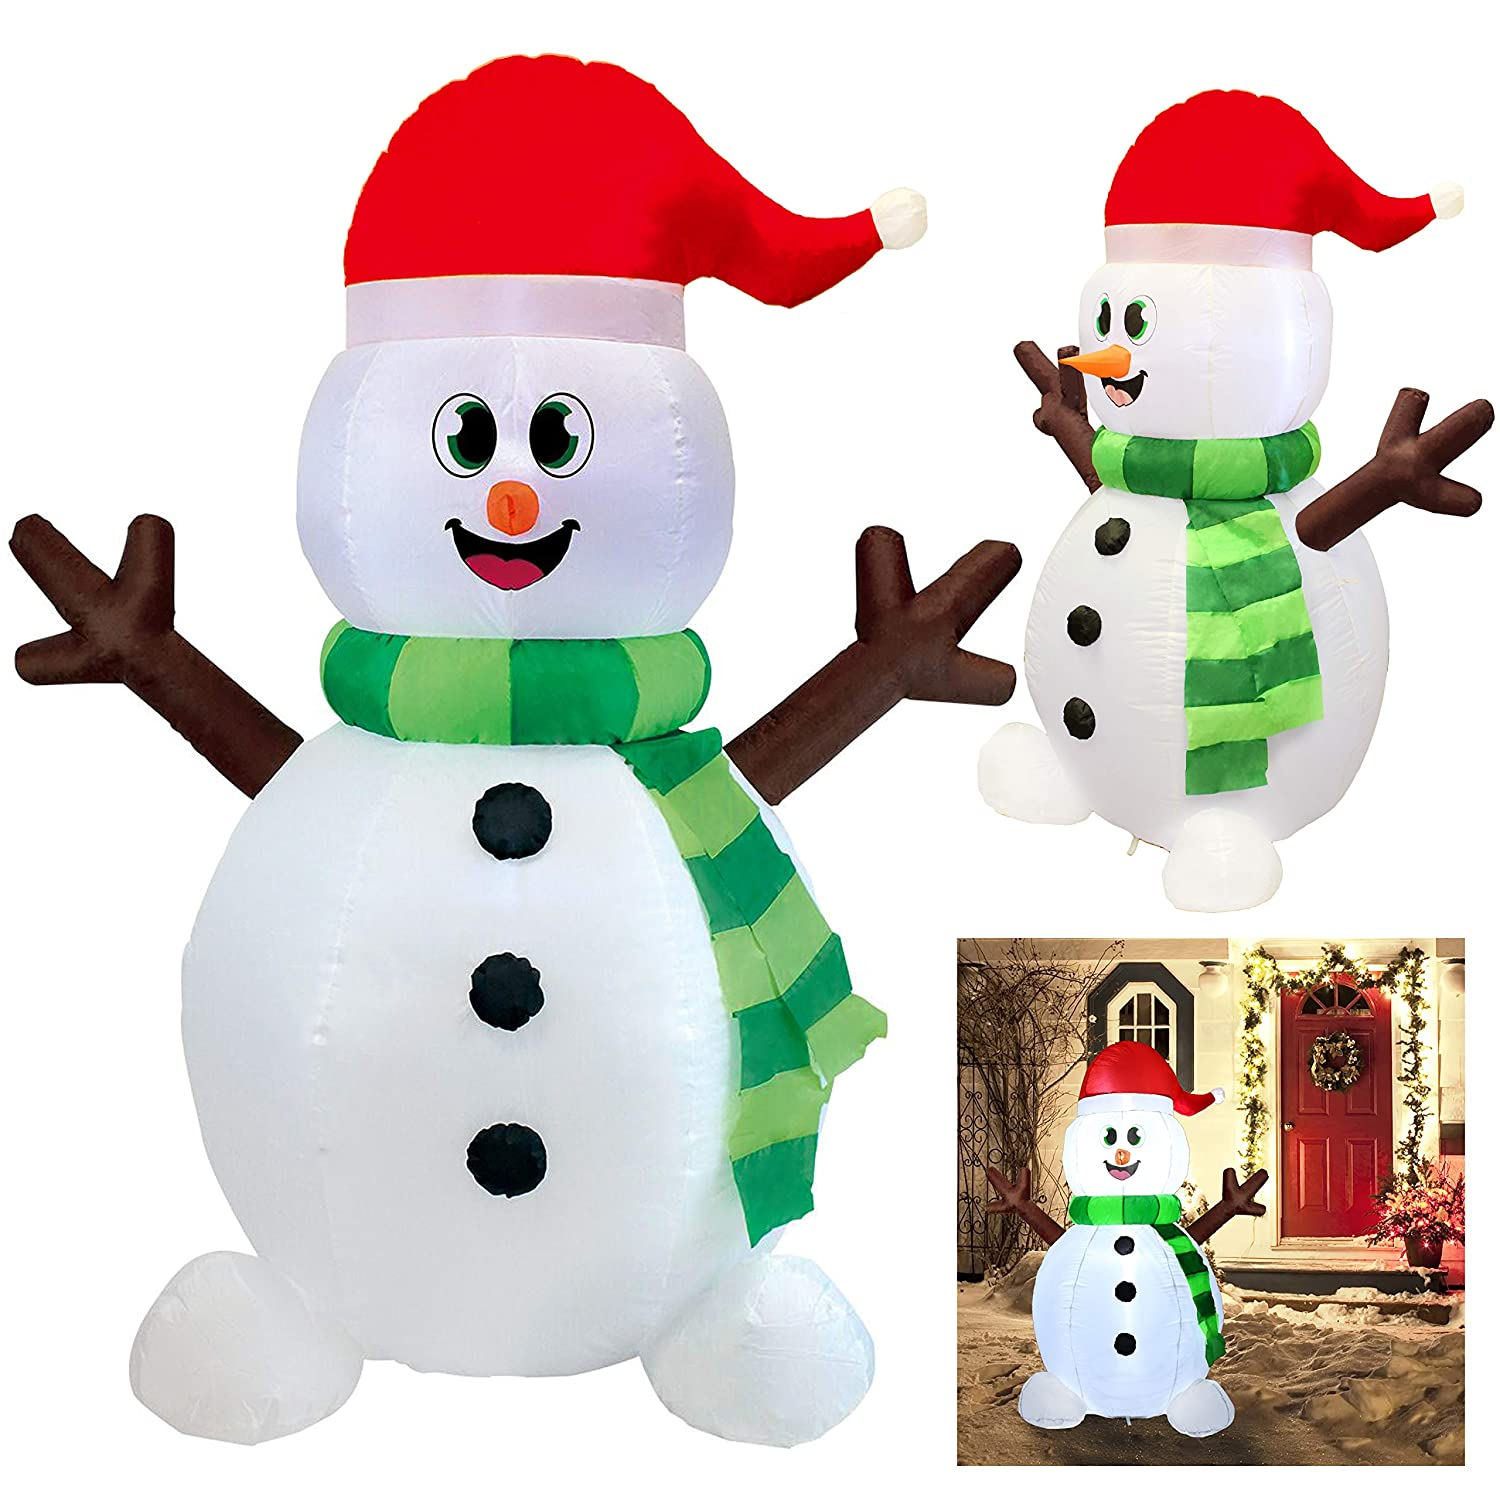 Amazon Joiedomi 5 Foot Snowman Inflatable LED Light Up